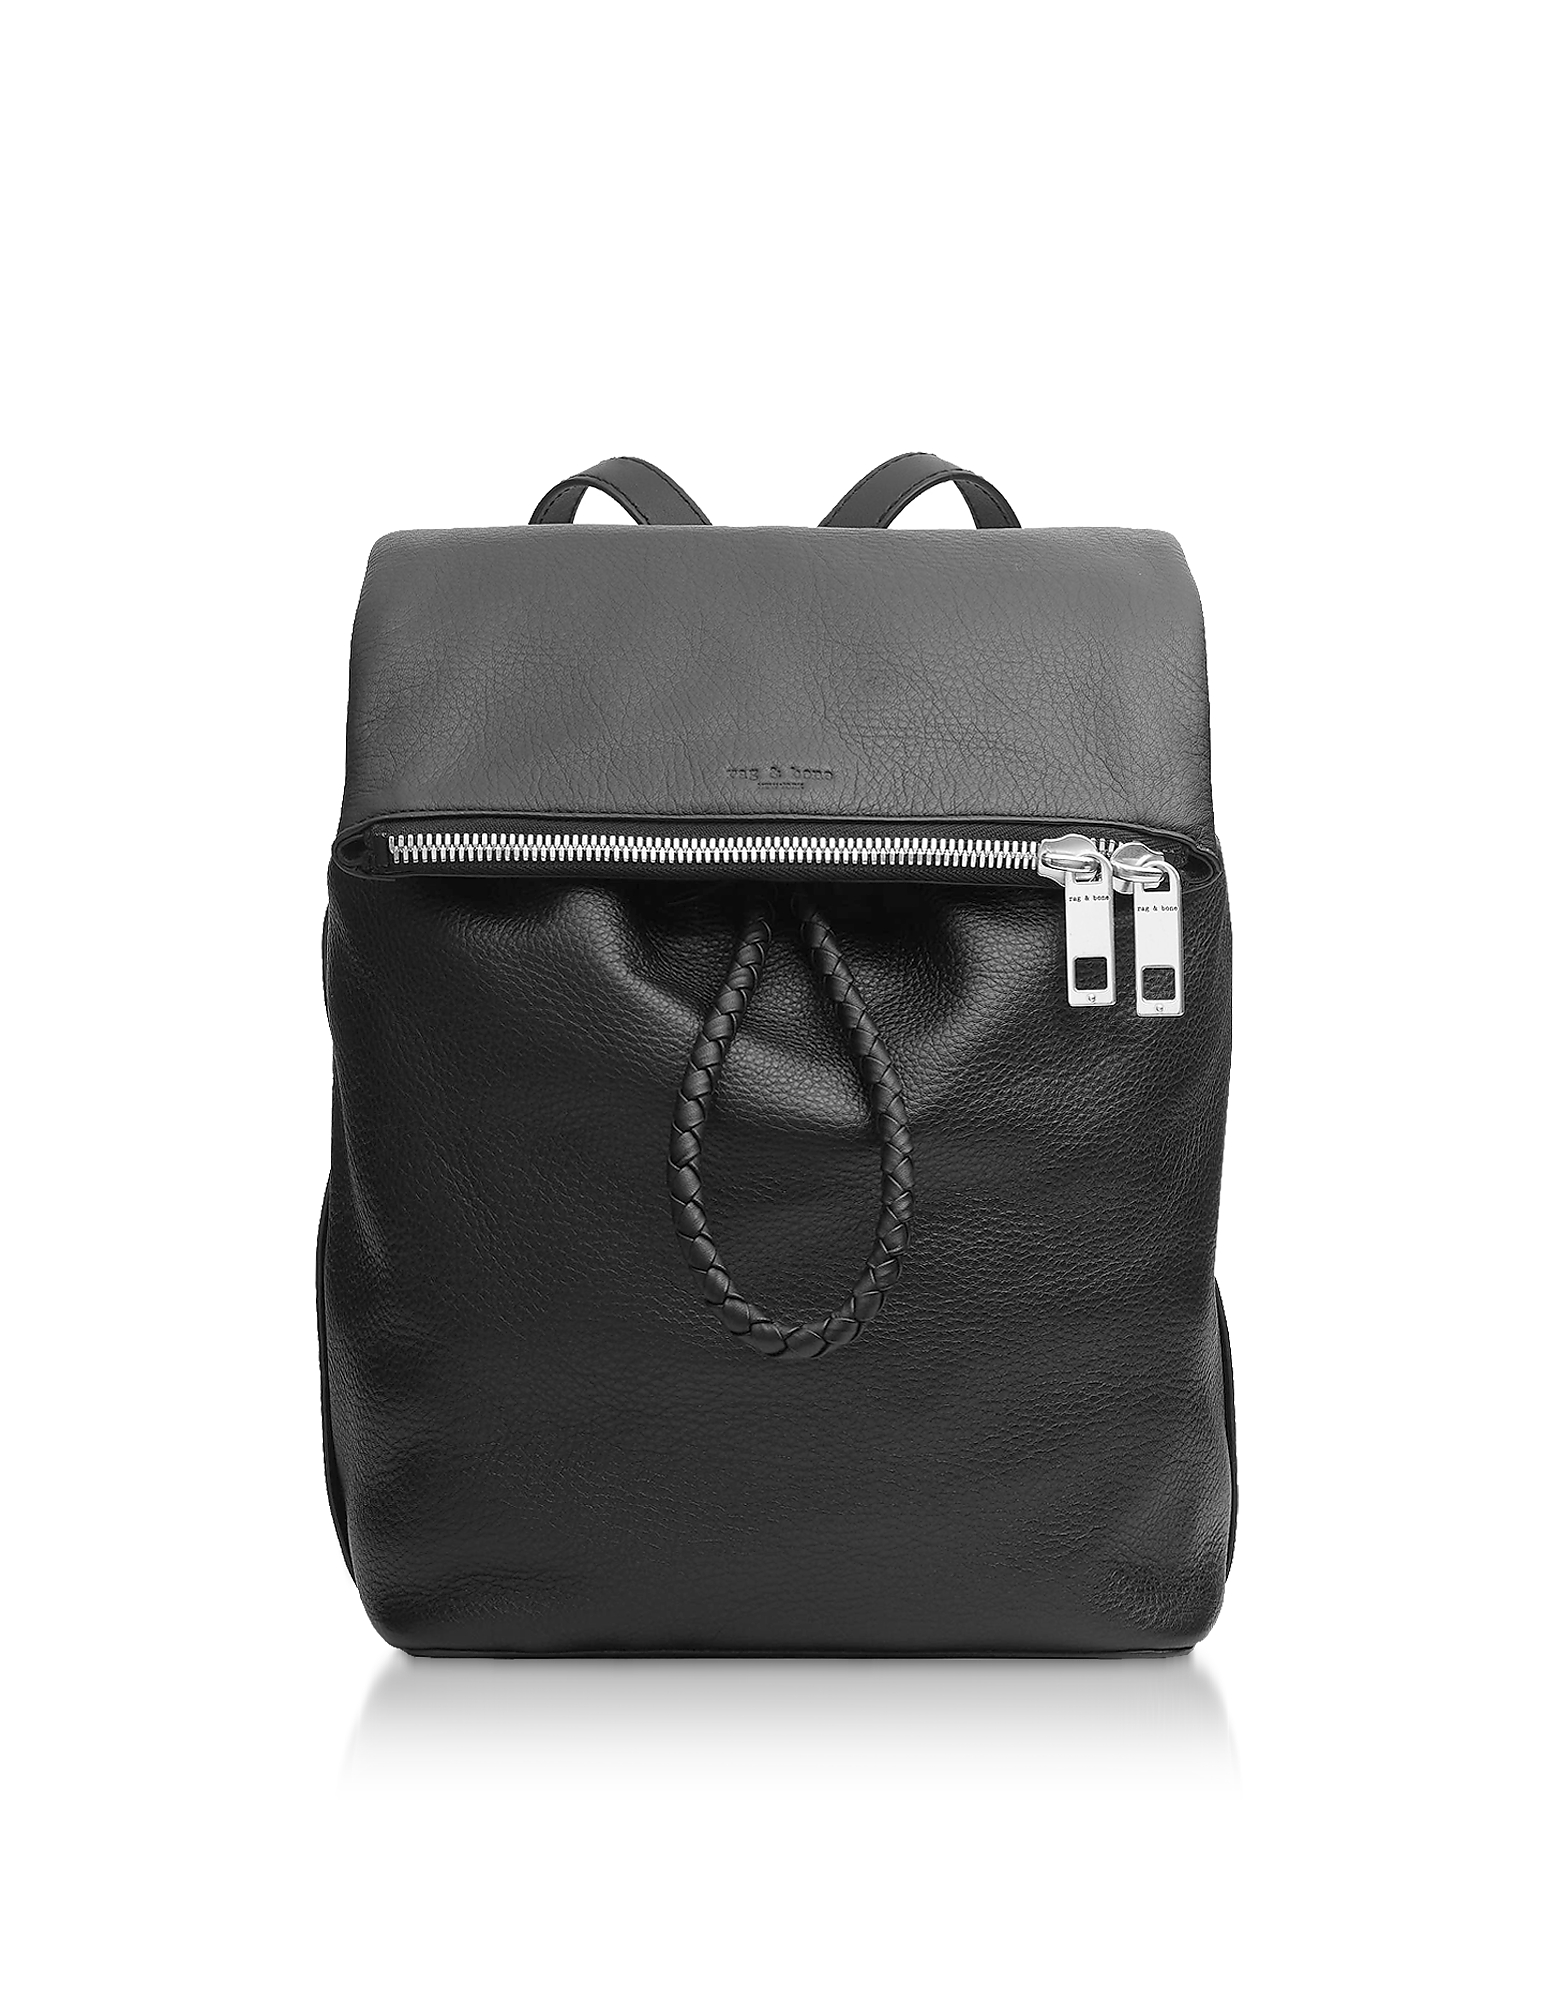 Black Leather Loner Backpack